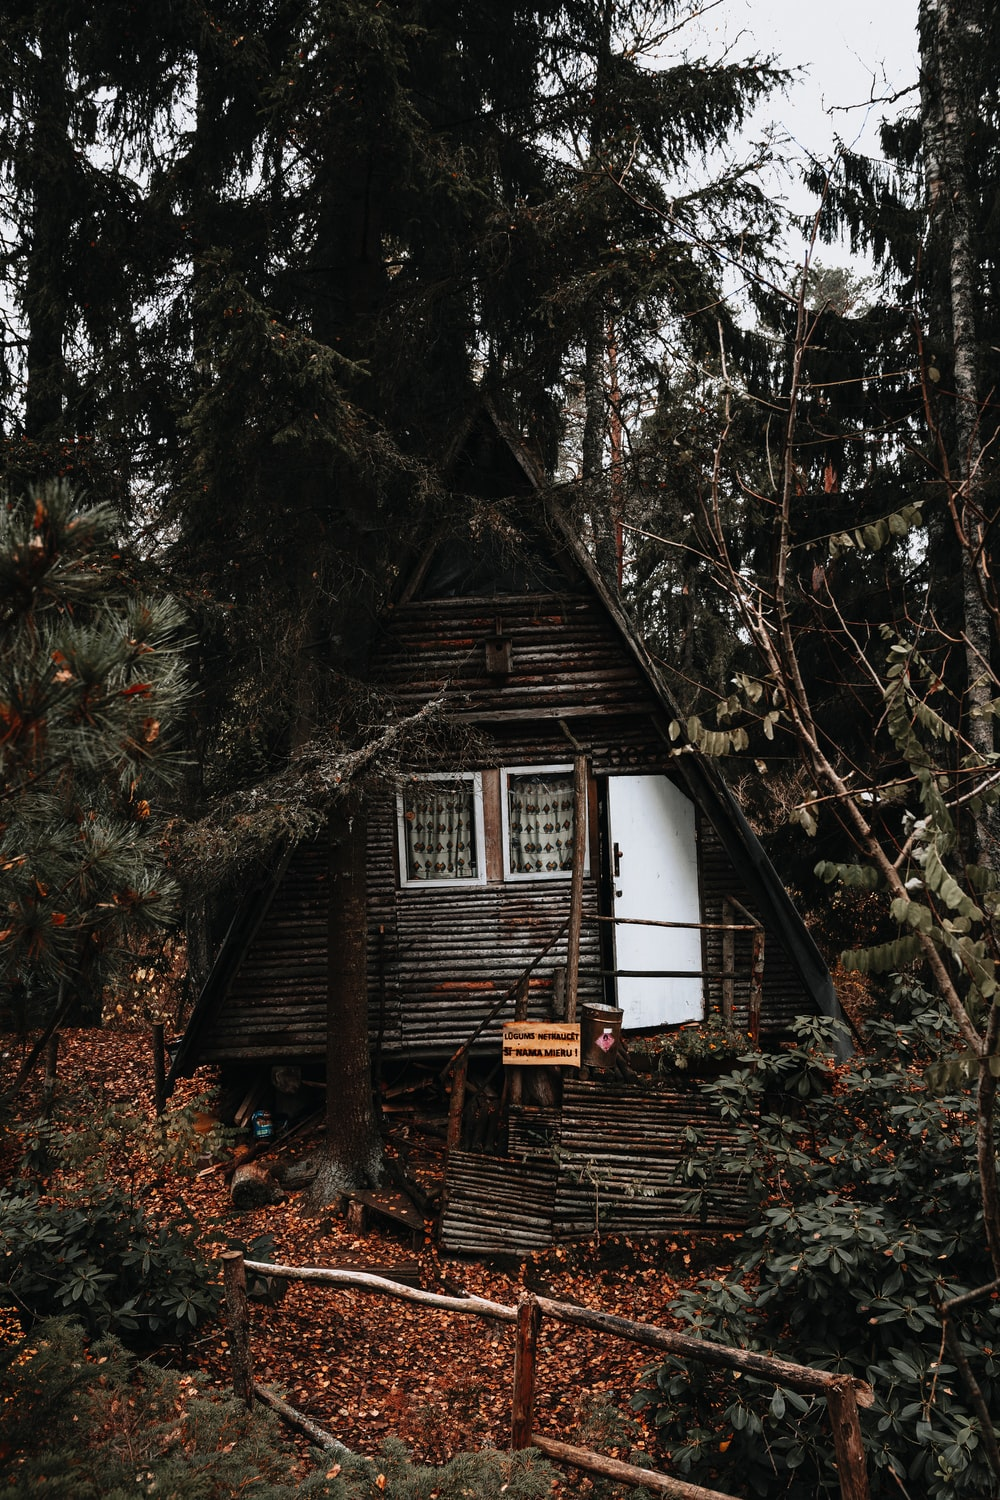 white and brown wooden house surrounded by trees